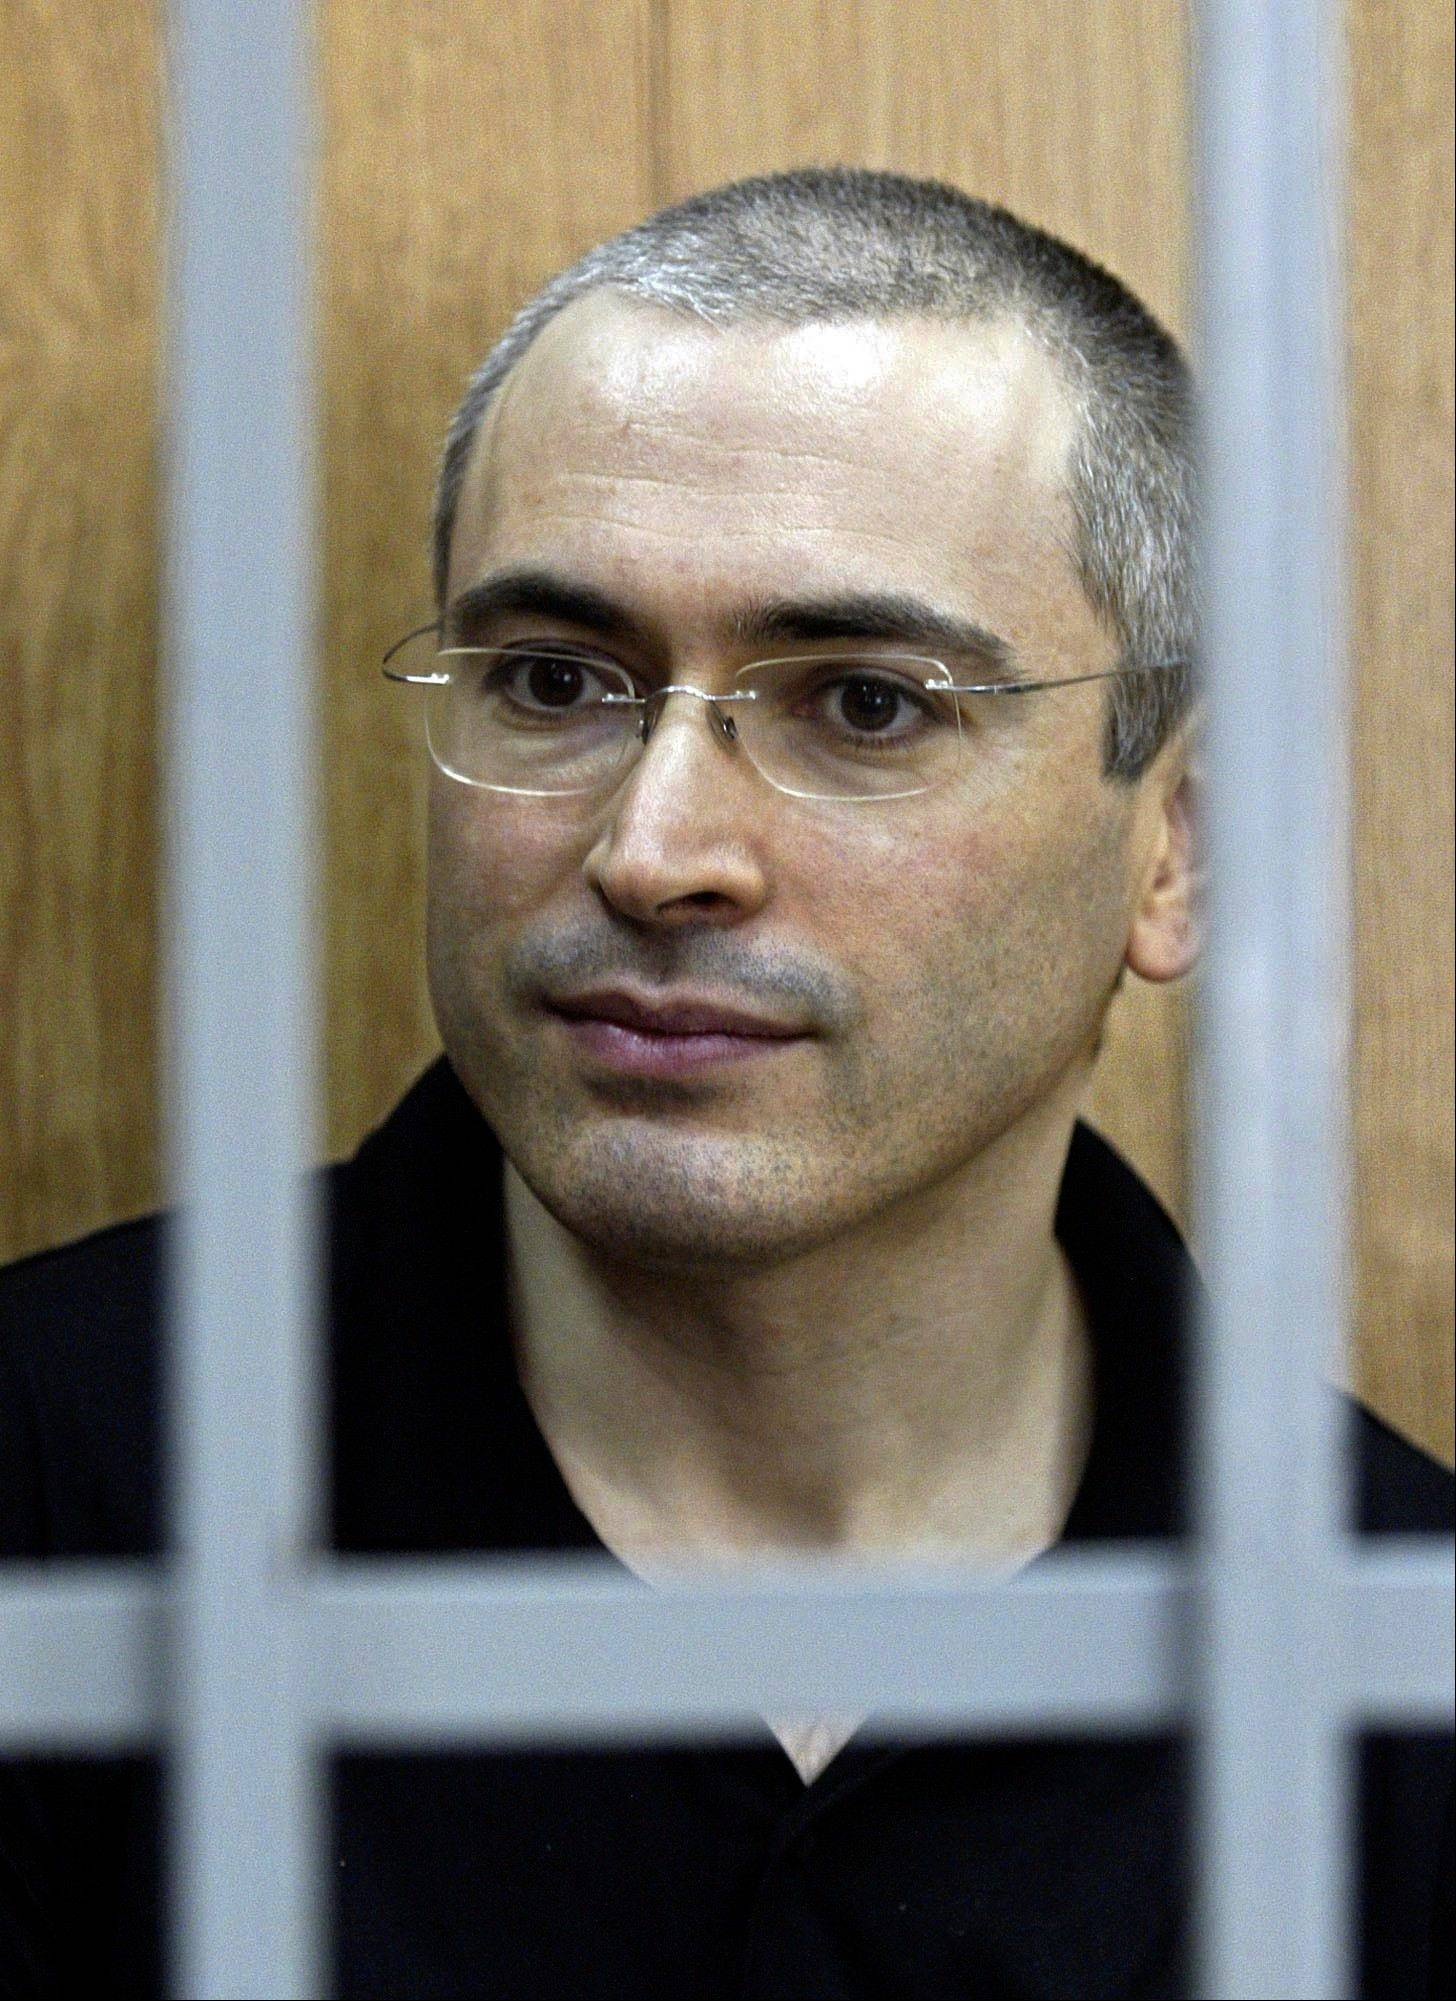 President Vladimir Putin said Thursday he will pardon jailed oil tycoon Mikhail Khodorkovsky, a surprise decision that will let his top foe and Russia's formerly richest man out of prison after more than a decade.